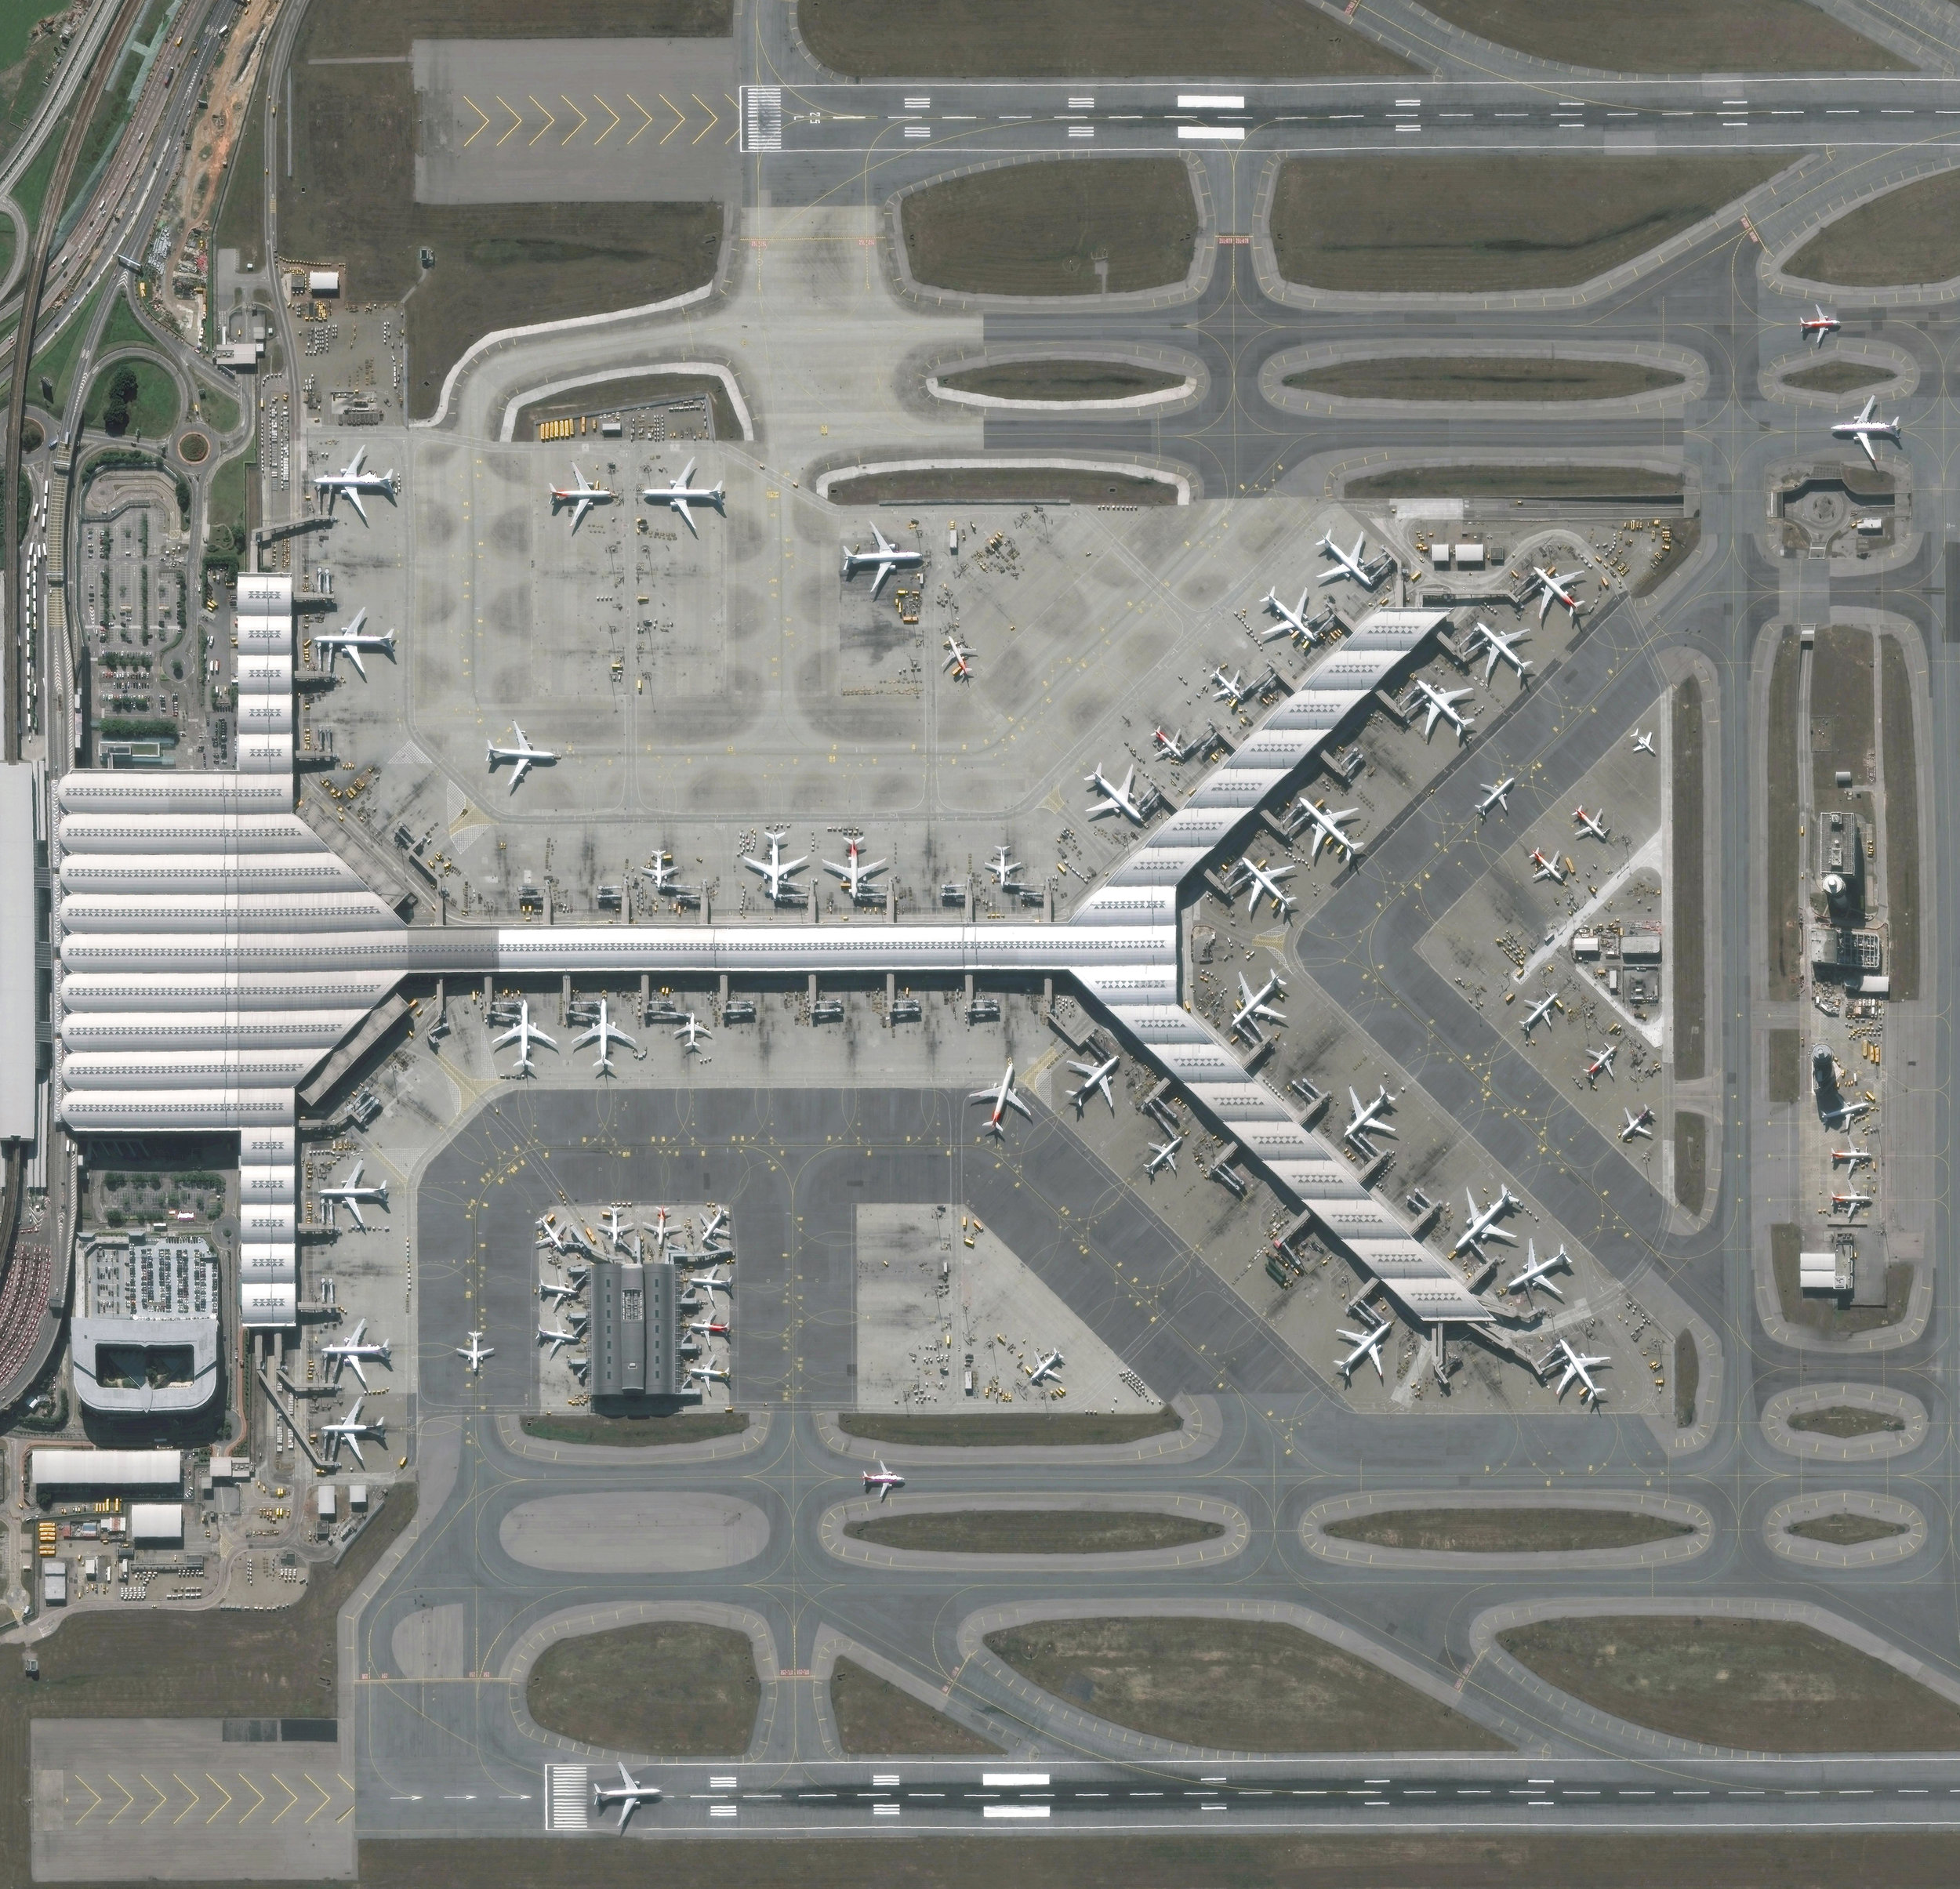 """Hong Kong International Airport is located on Chek Lap Kok, an island in Hong Kong's western waters. It is the world's busiest cargo gateway and also one of the busiest passenger airports on Earth, handling upwards of 65 million passengers a year. Terminal 1, seen here, measures 570,000 square meters (6.1 million square feet), making it the third largest passenger terminal in the world.  22°18'48.8""""N, 113°55'49.8""""E  Source imagery: DigitalGlobe"""